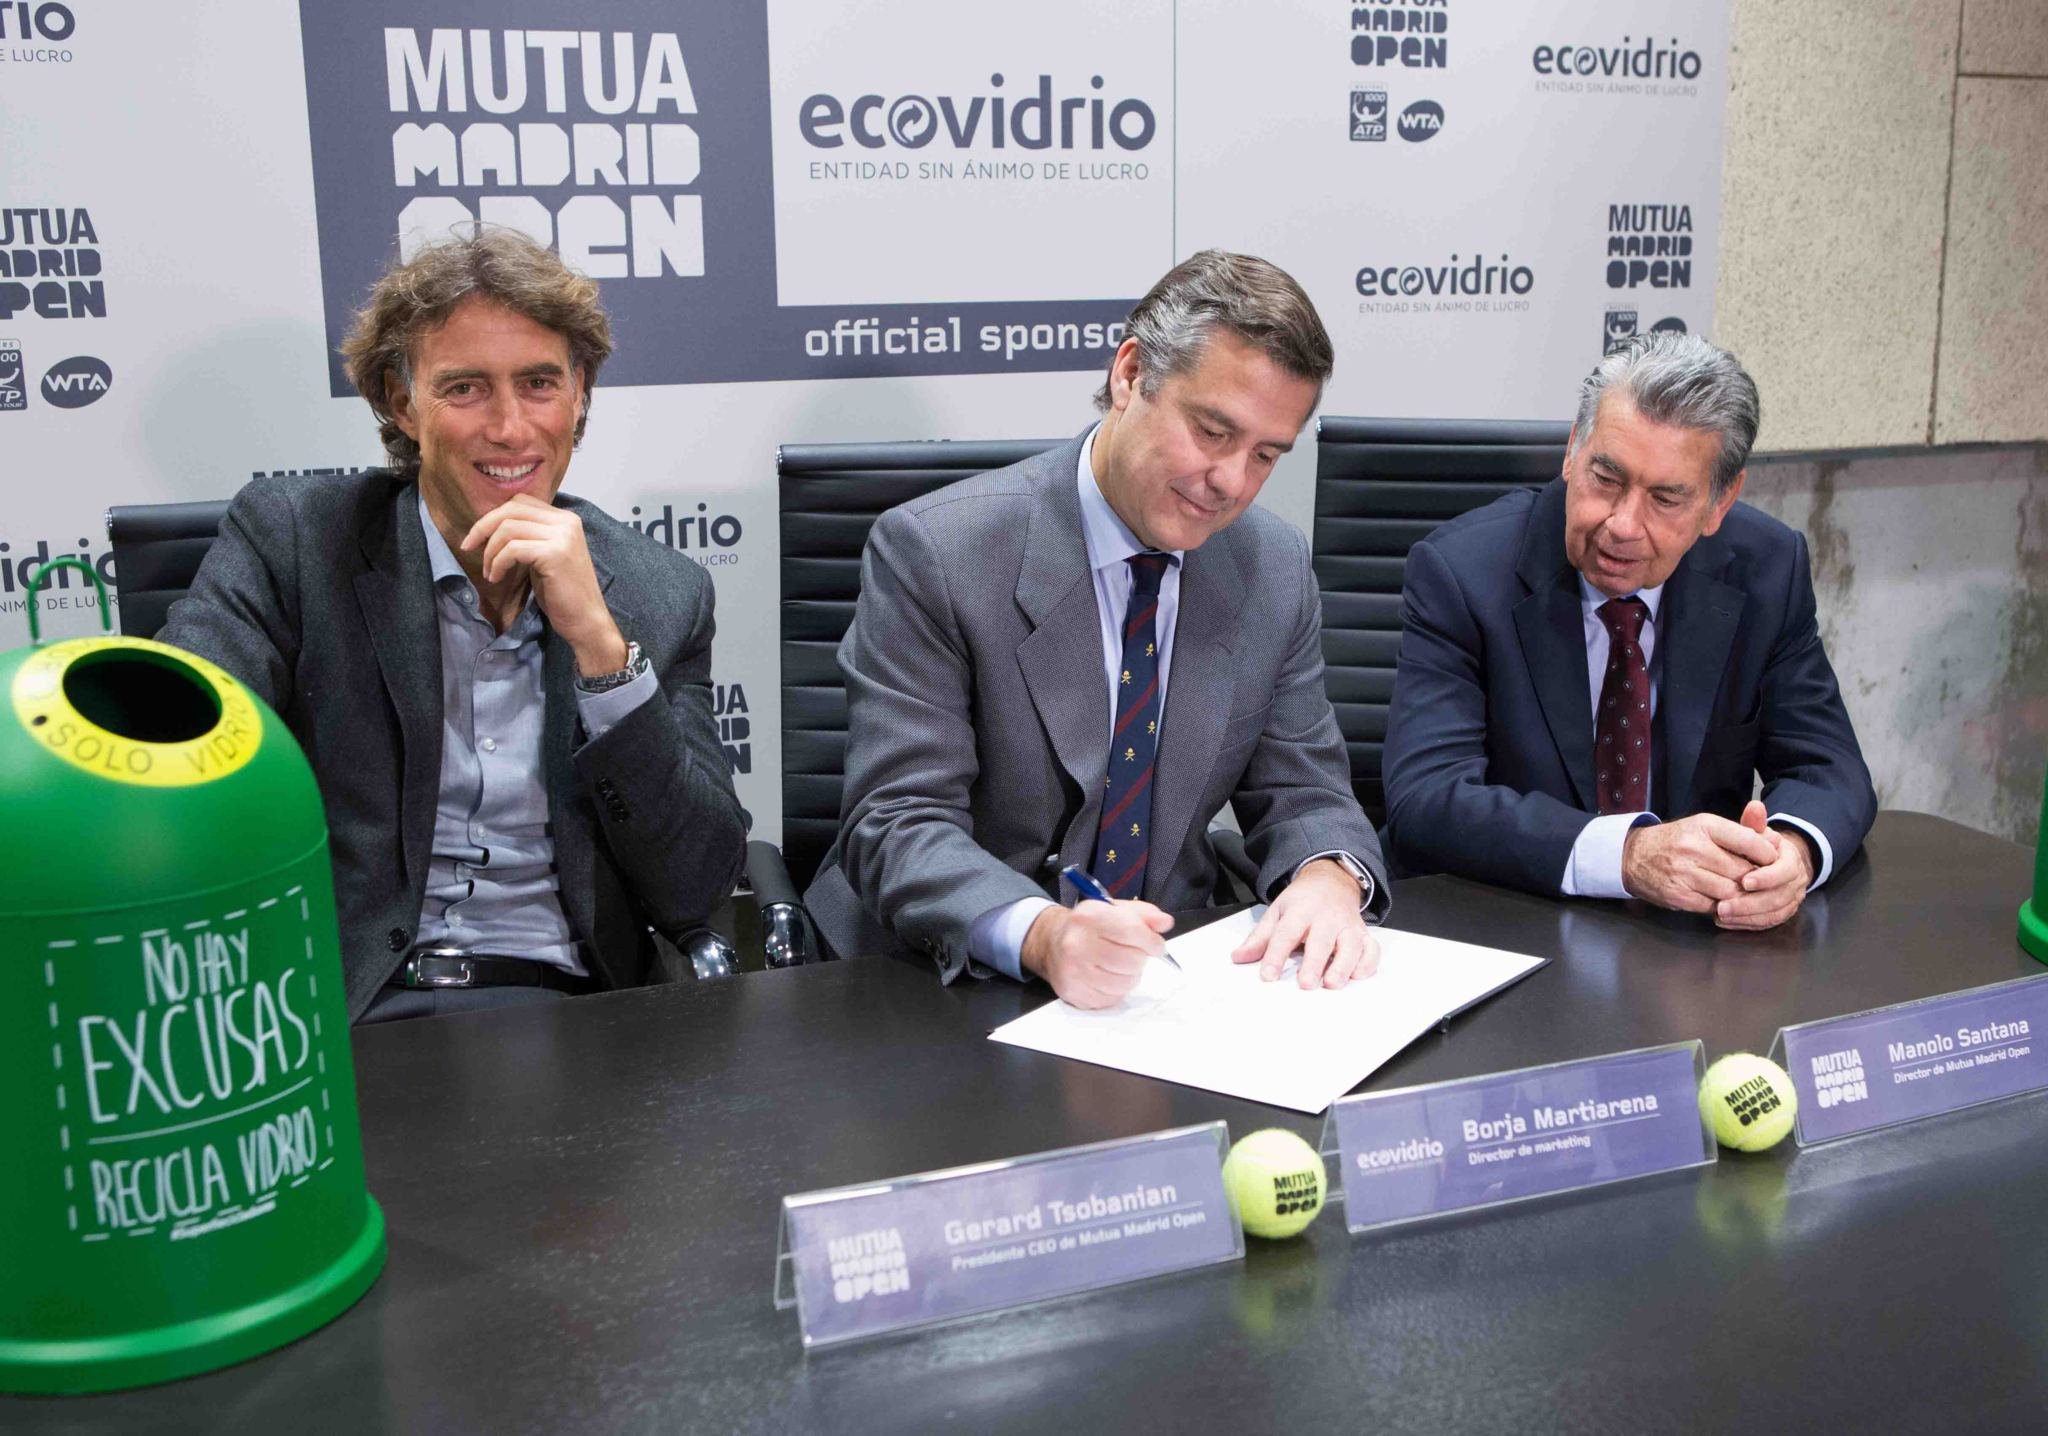 mutua madrid open tenis ecovidrio